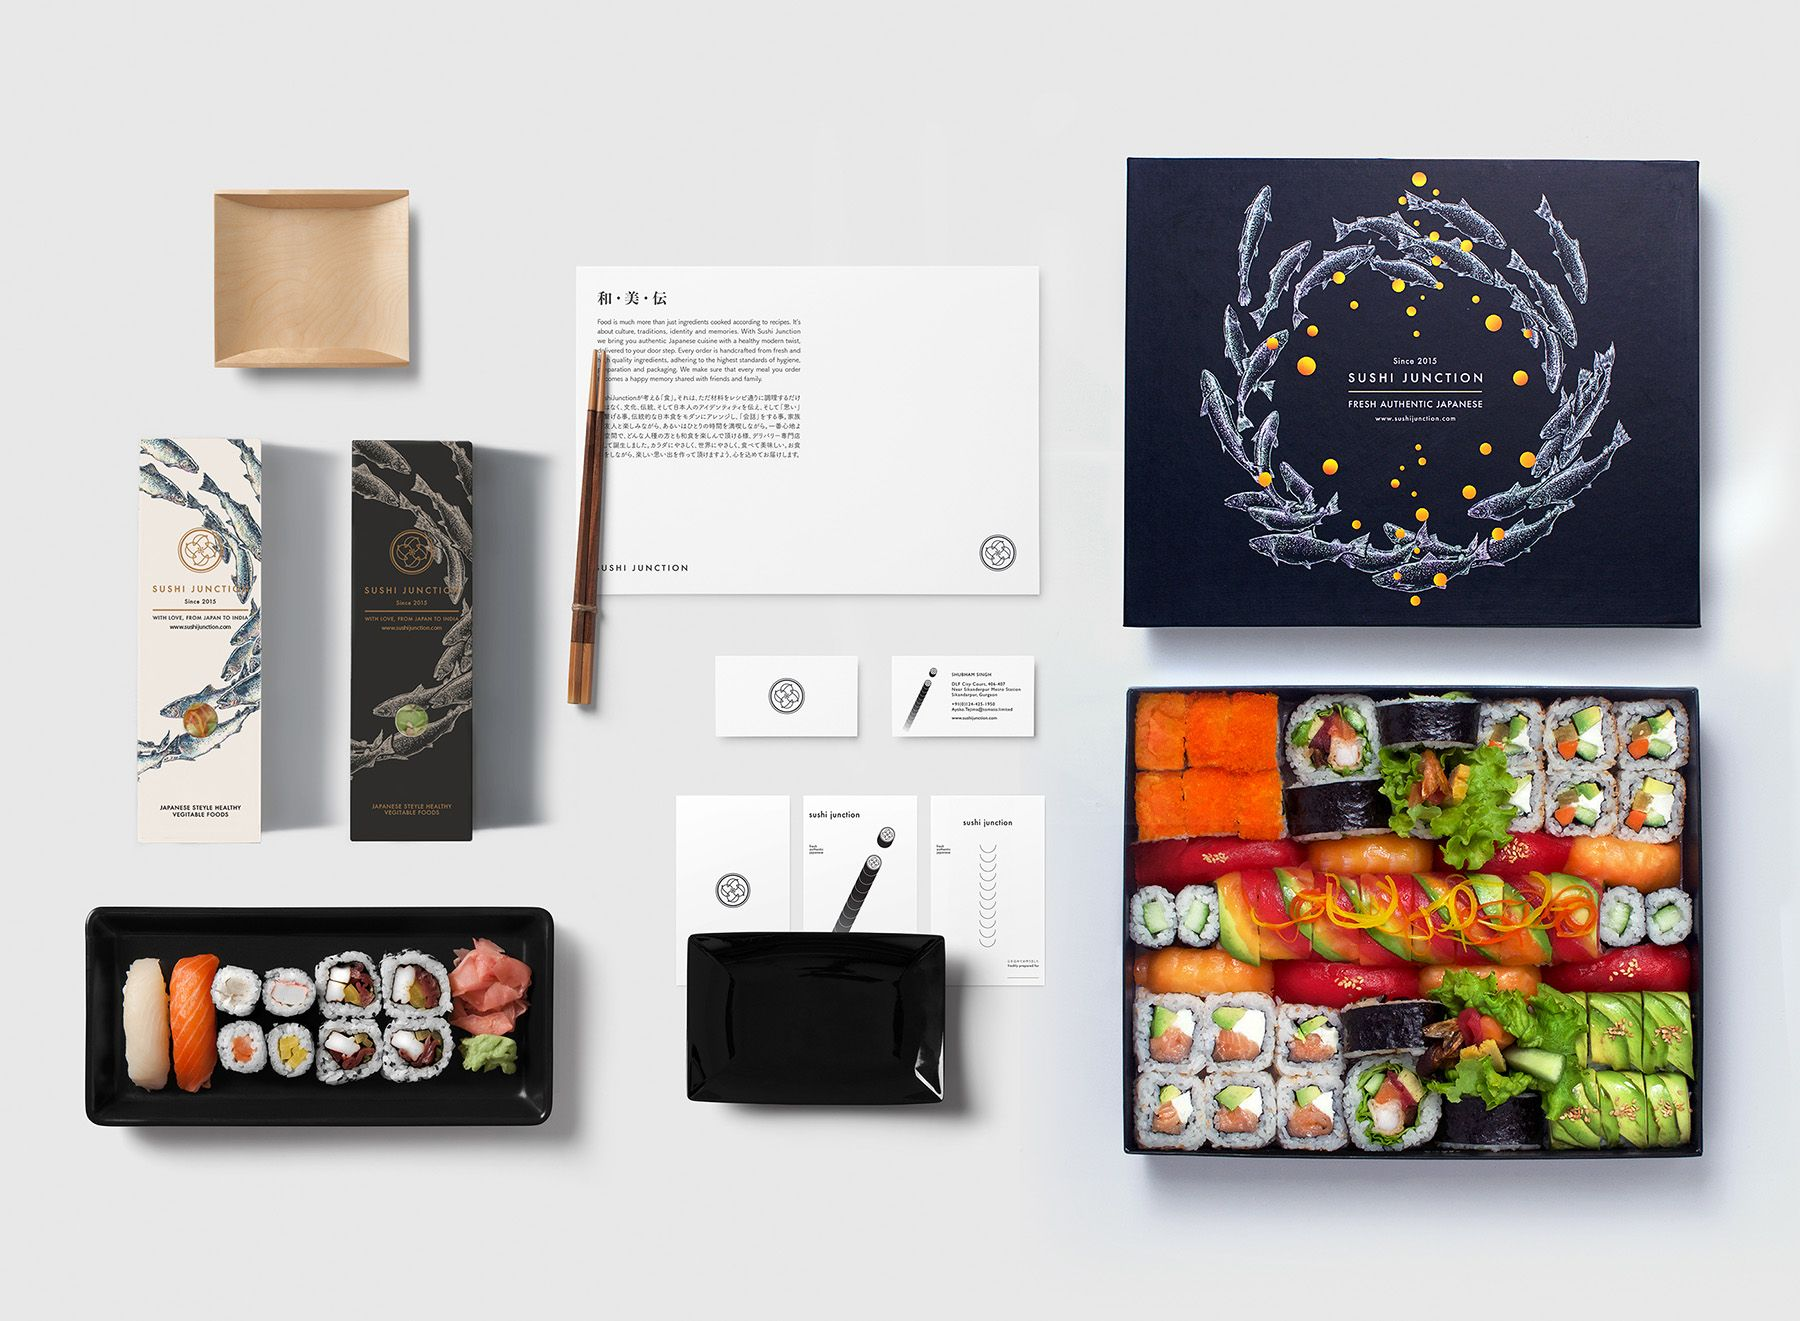 Eye Catching Packaging With Sushi Junction Packaging Design Inspiration Packaging Design Graphic Design Packaging